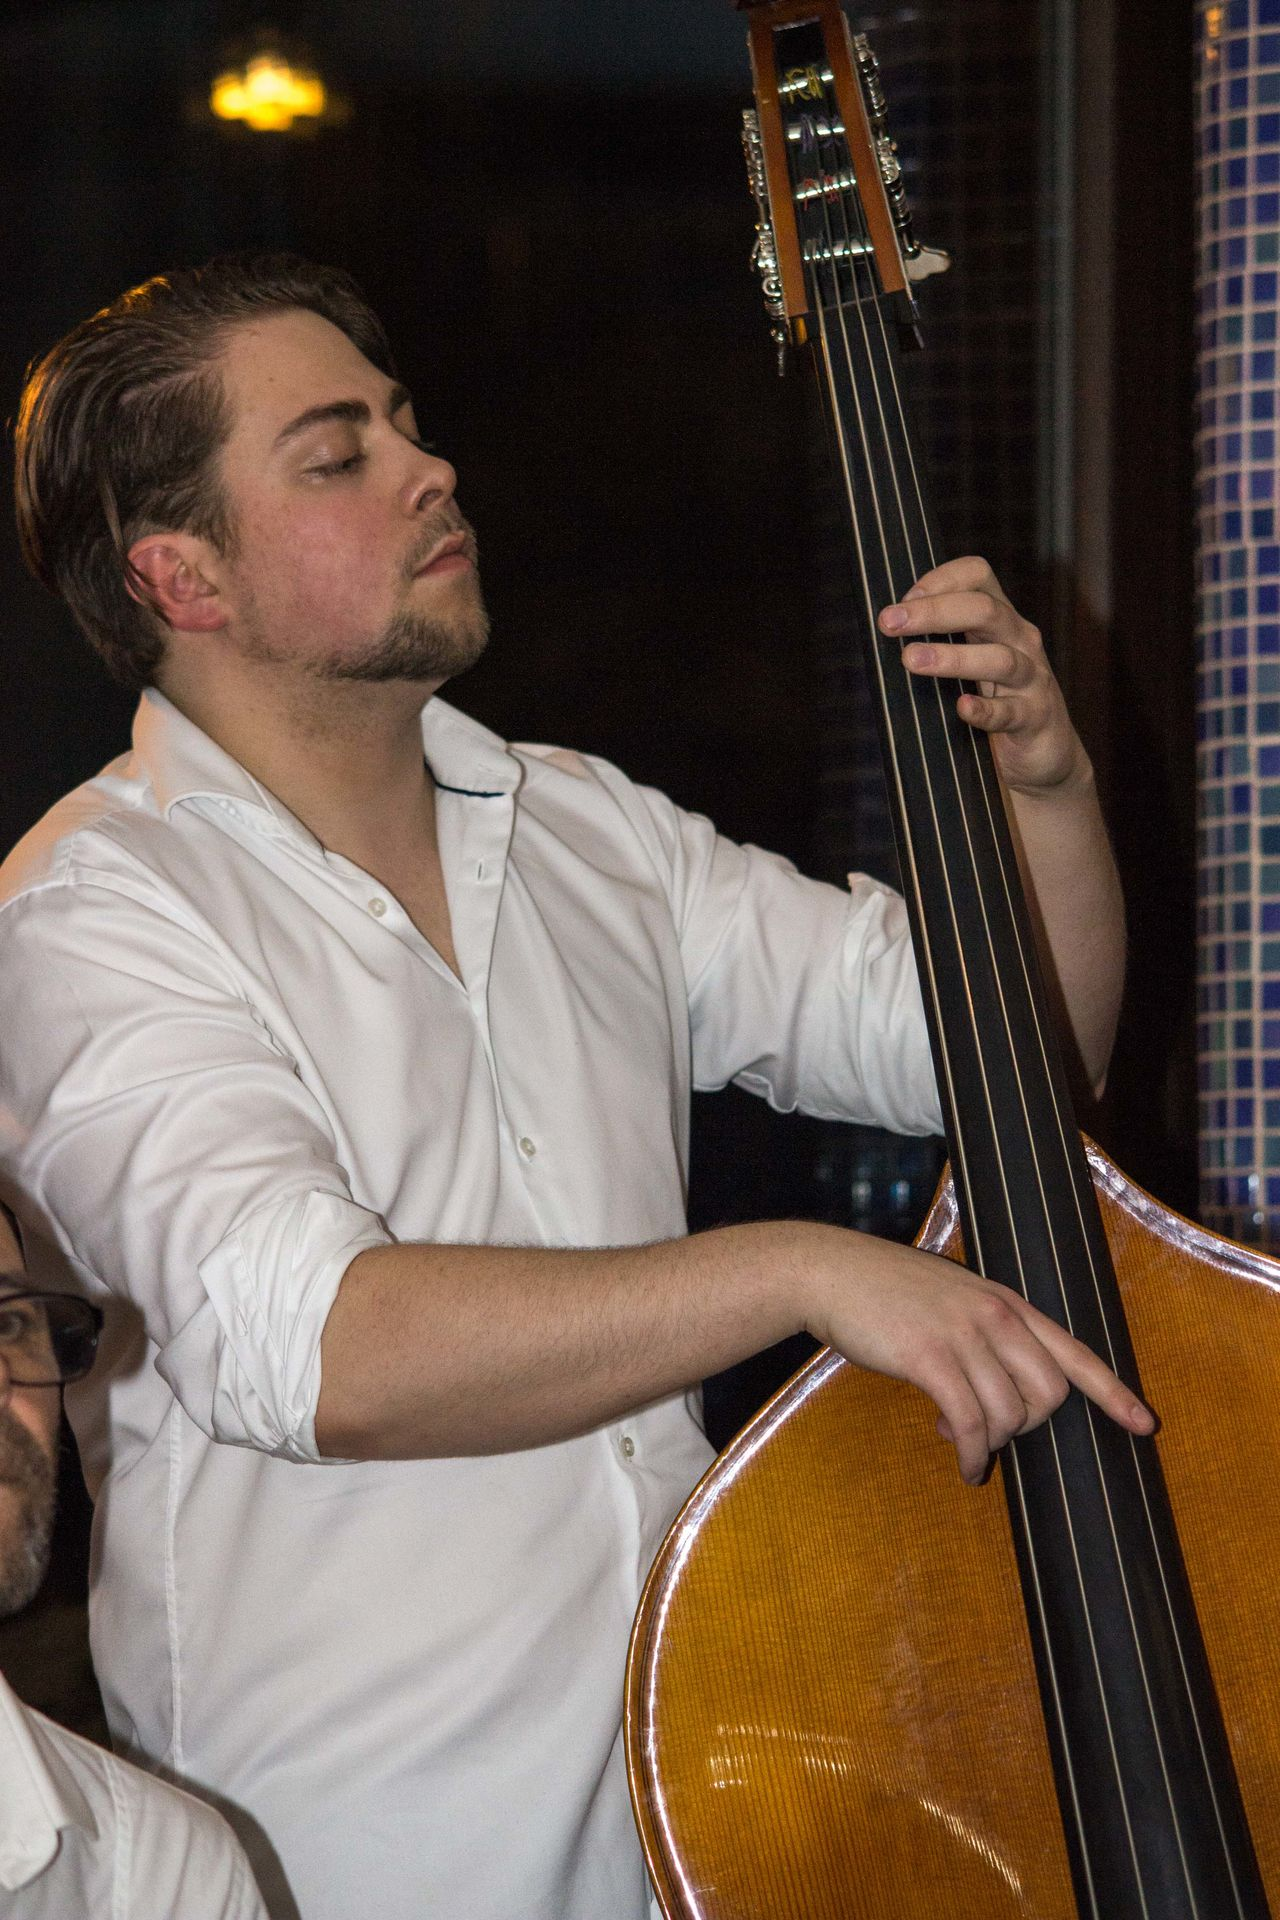 Bass Bassist Concert Concert Photography Https://bandnamedjacob.wordpress.com Jacob Konzert Live Live Music Men Michael Goldmann Music Music Musical Instrument Musician Musiker One Man Only One Person Playing